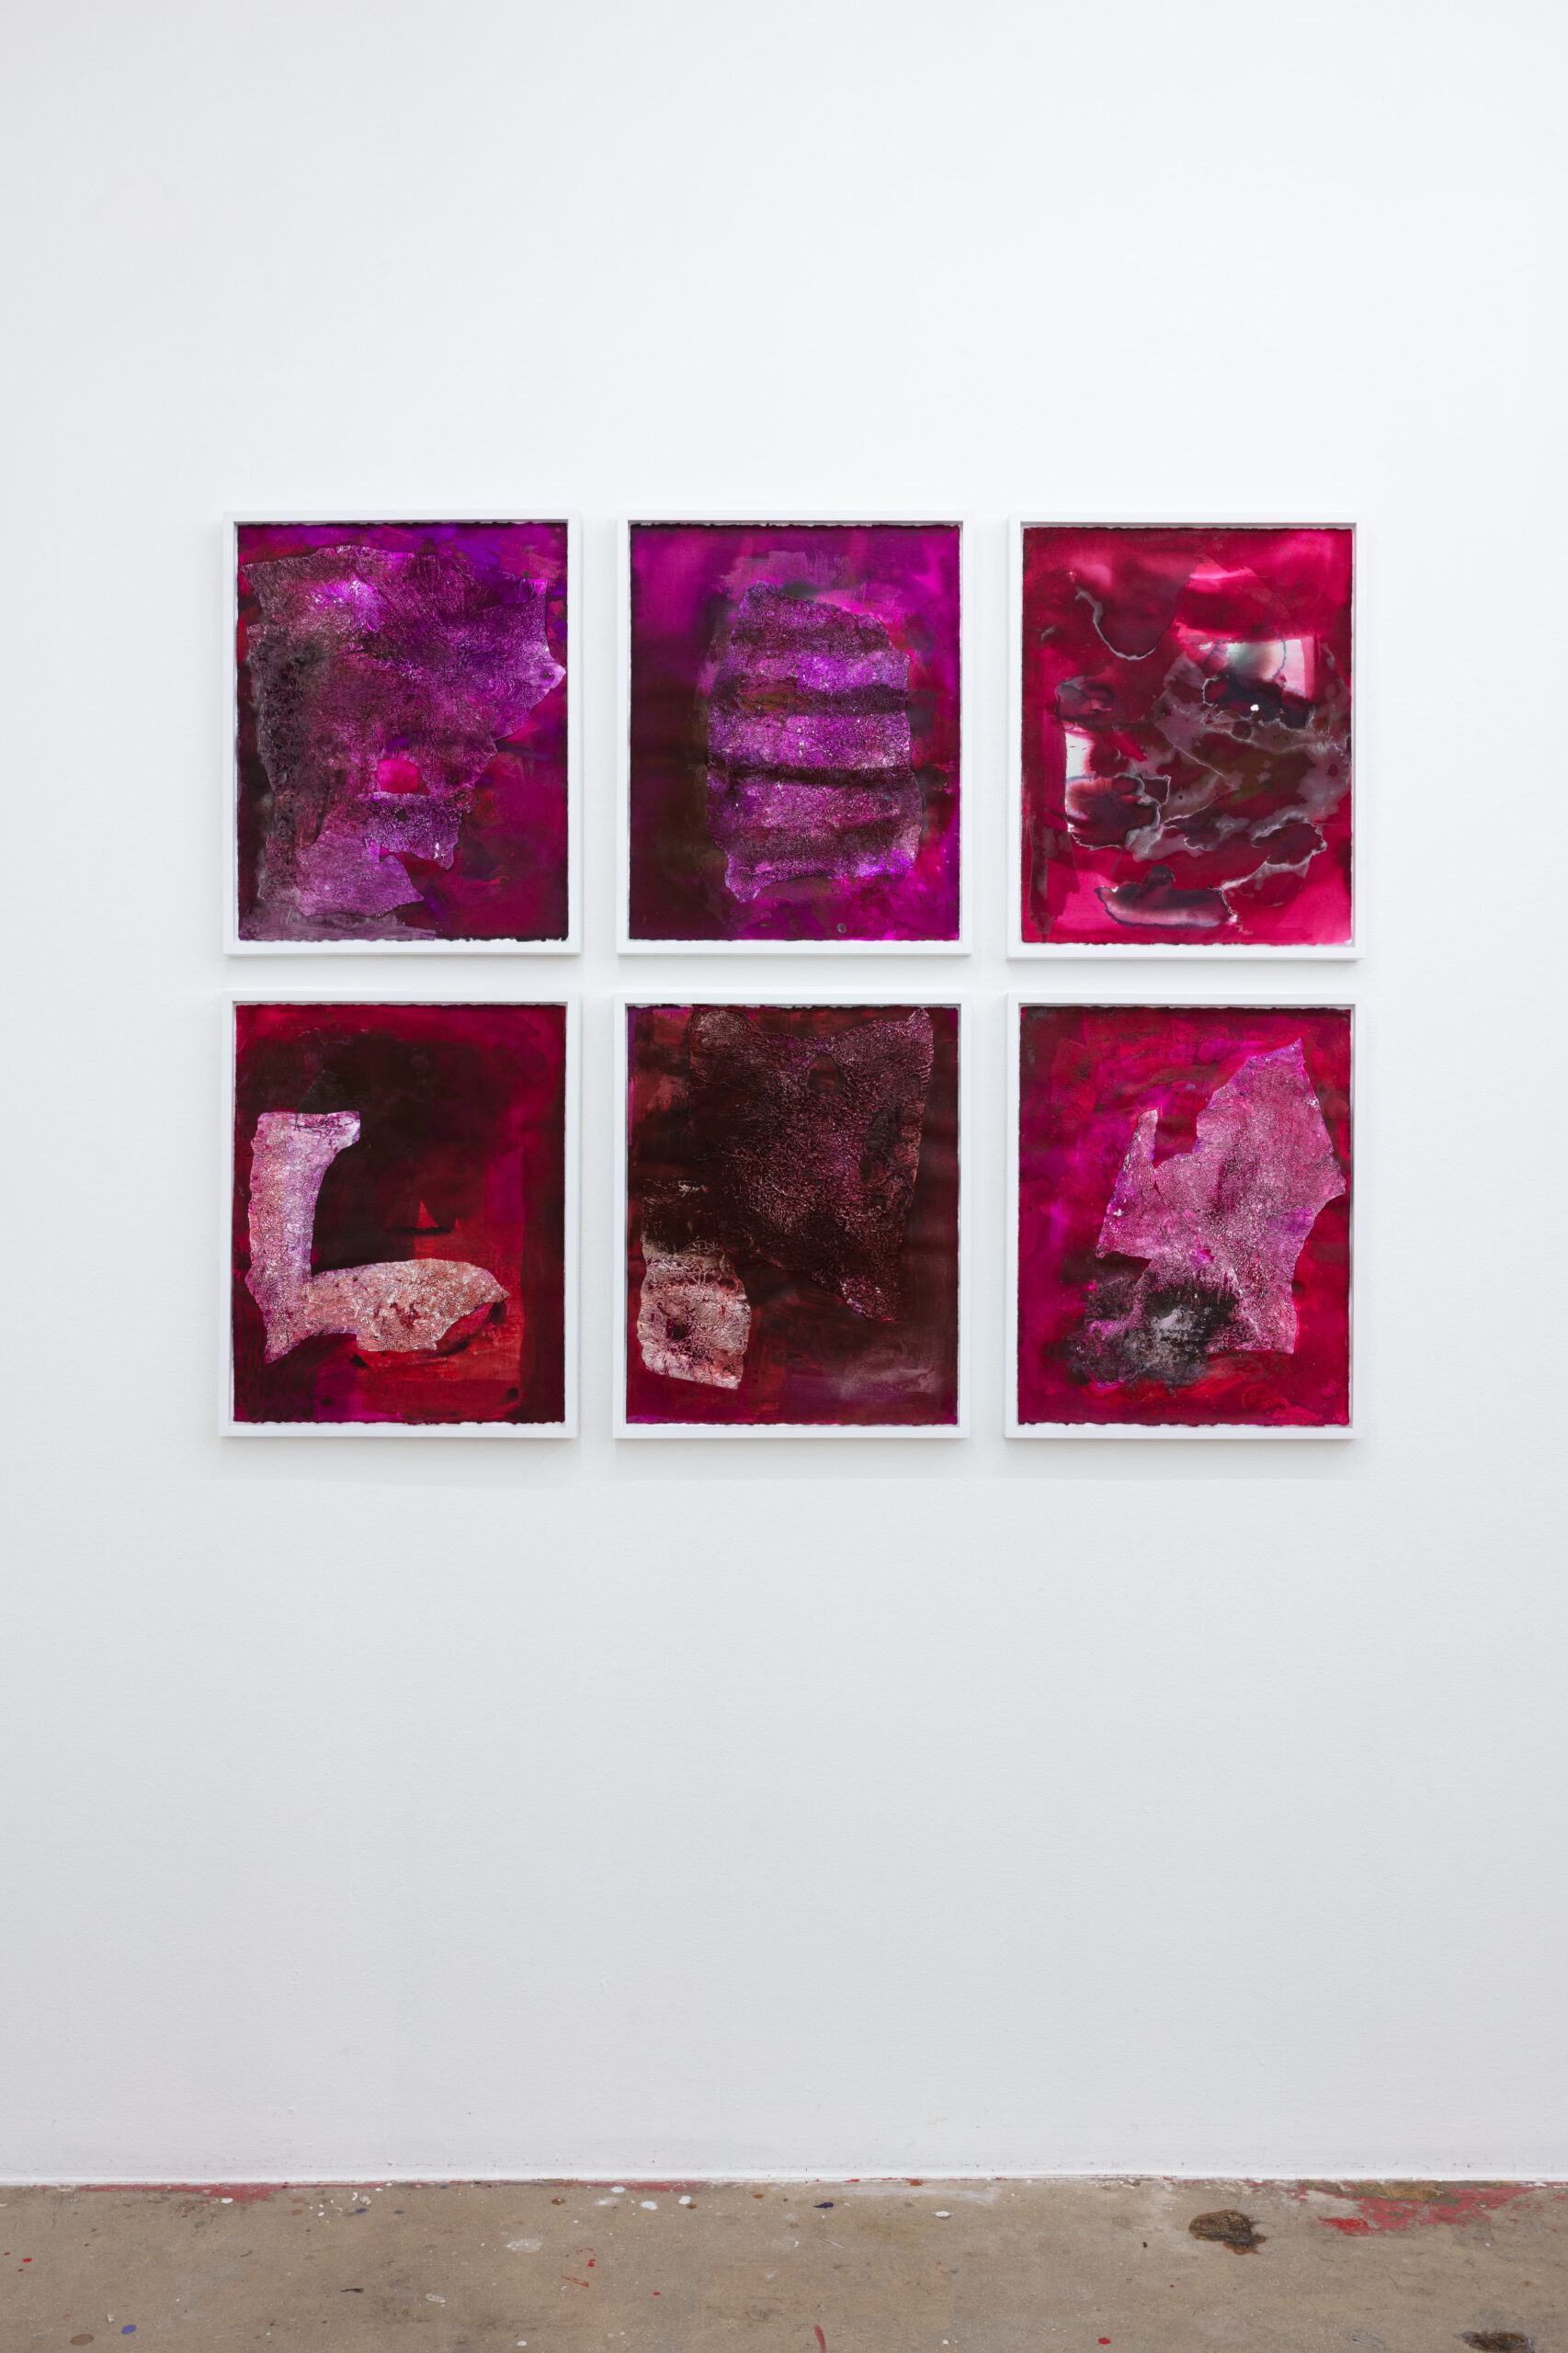 Anna Betbeze, Untitled (Forms Like Dreams) 1-6, gouache, dyes, pigments, foil on paper, 21.5 x 17.5 in. (each)